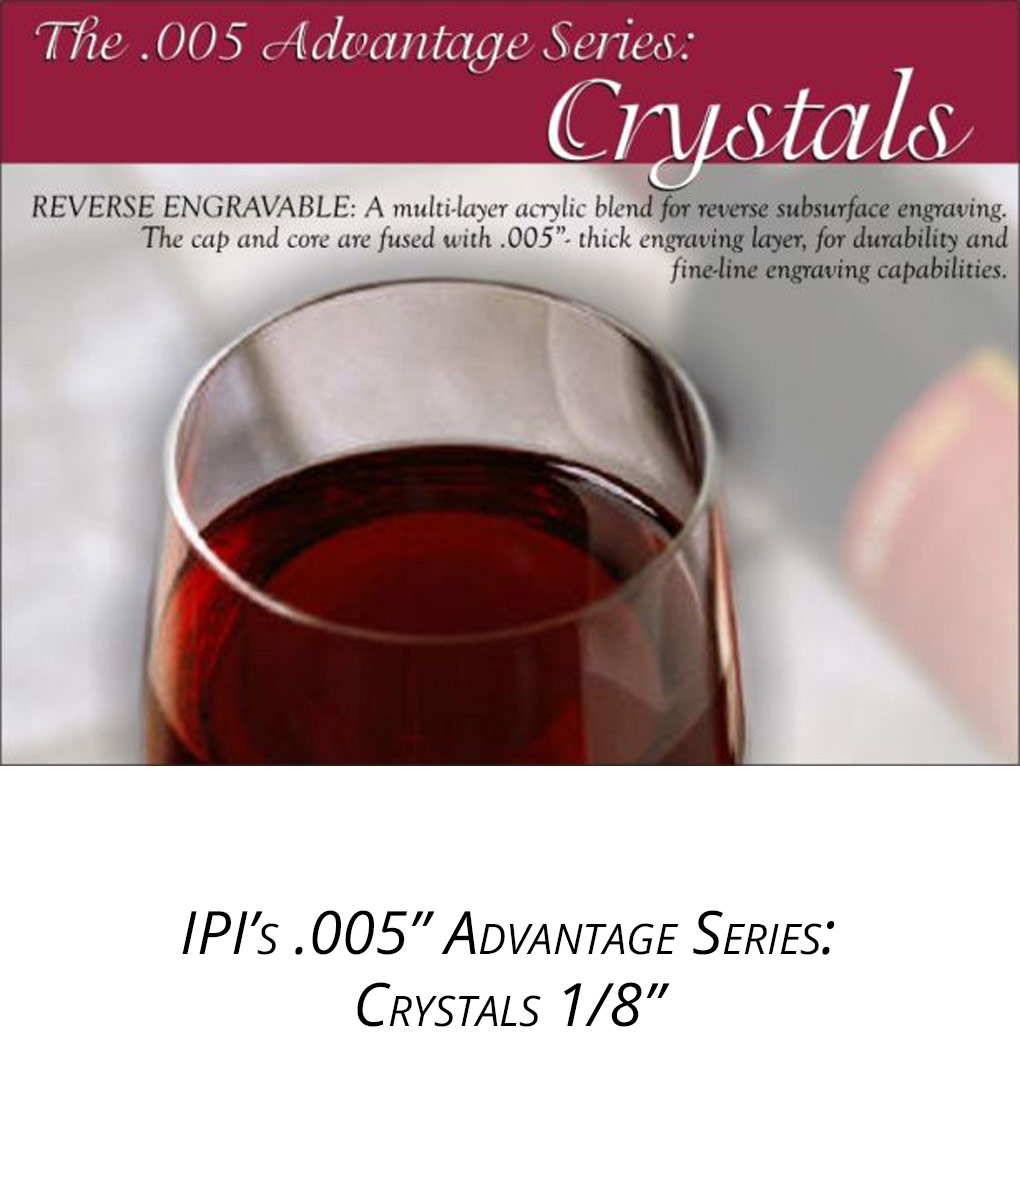 IPI 005 Advantage Series - Crystals 1/8 engraving material from Main Trophy Supply